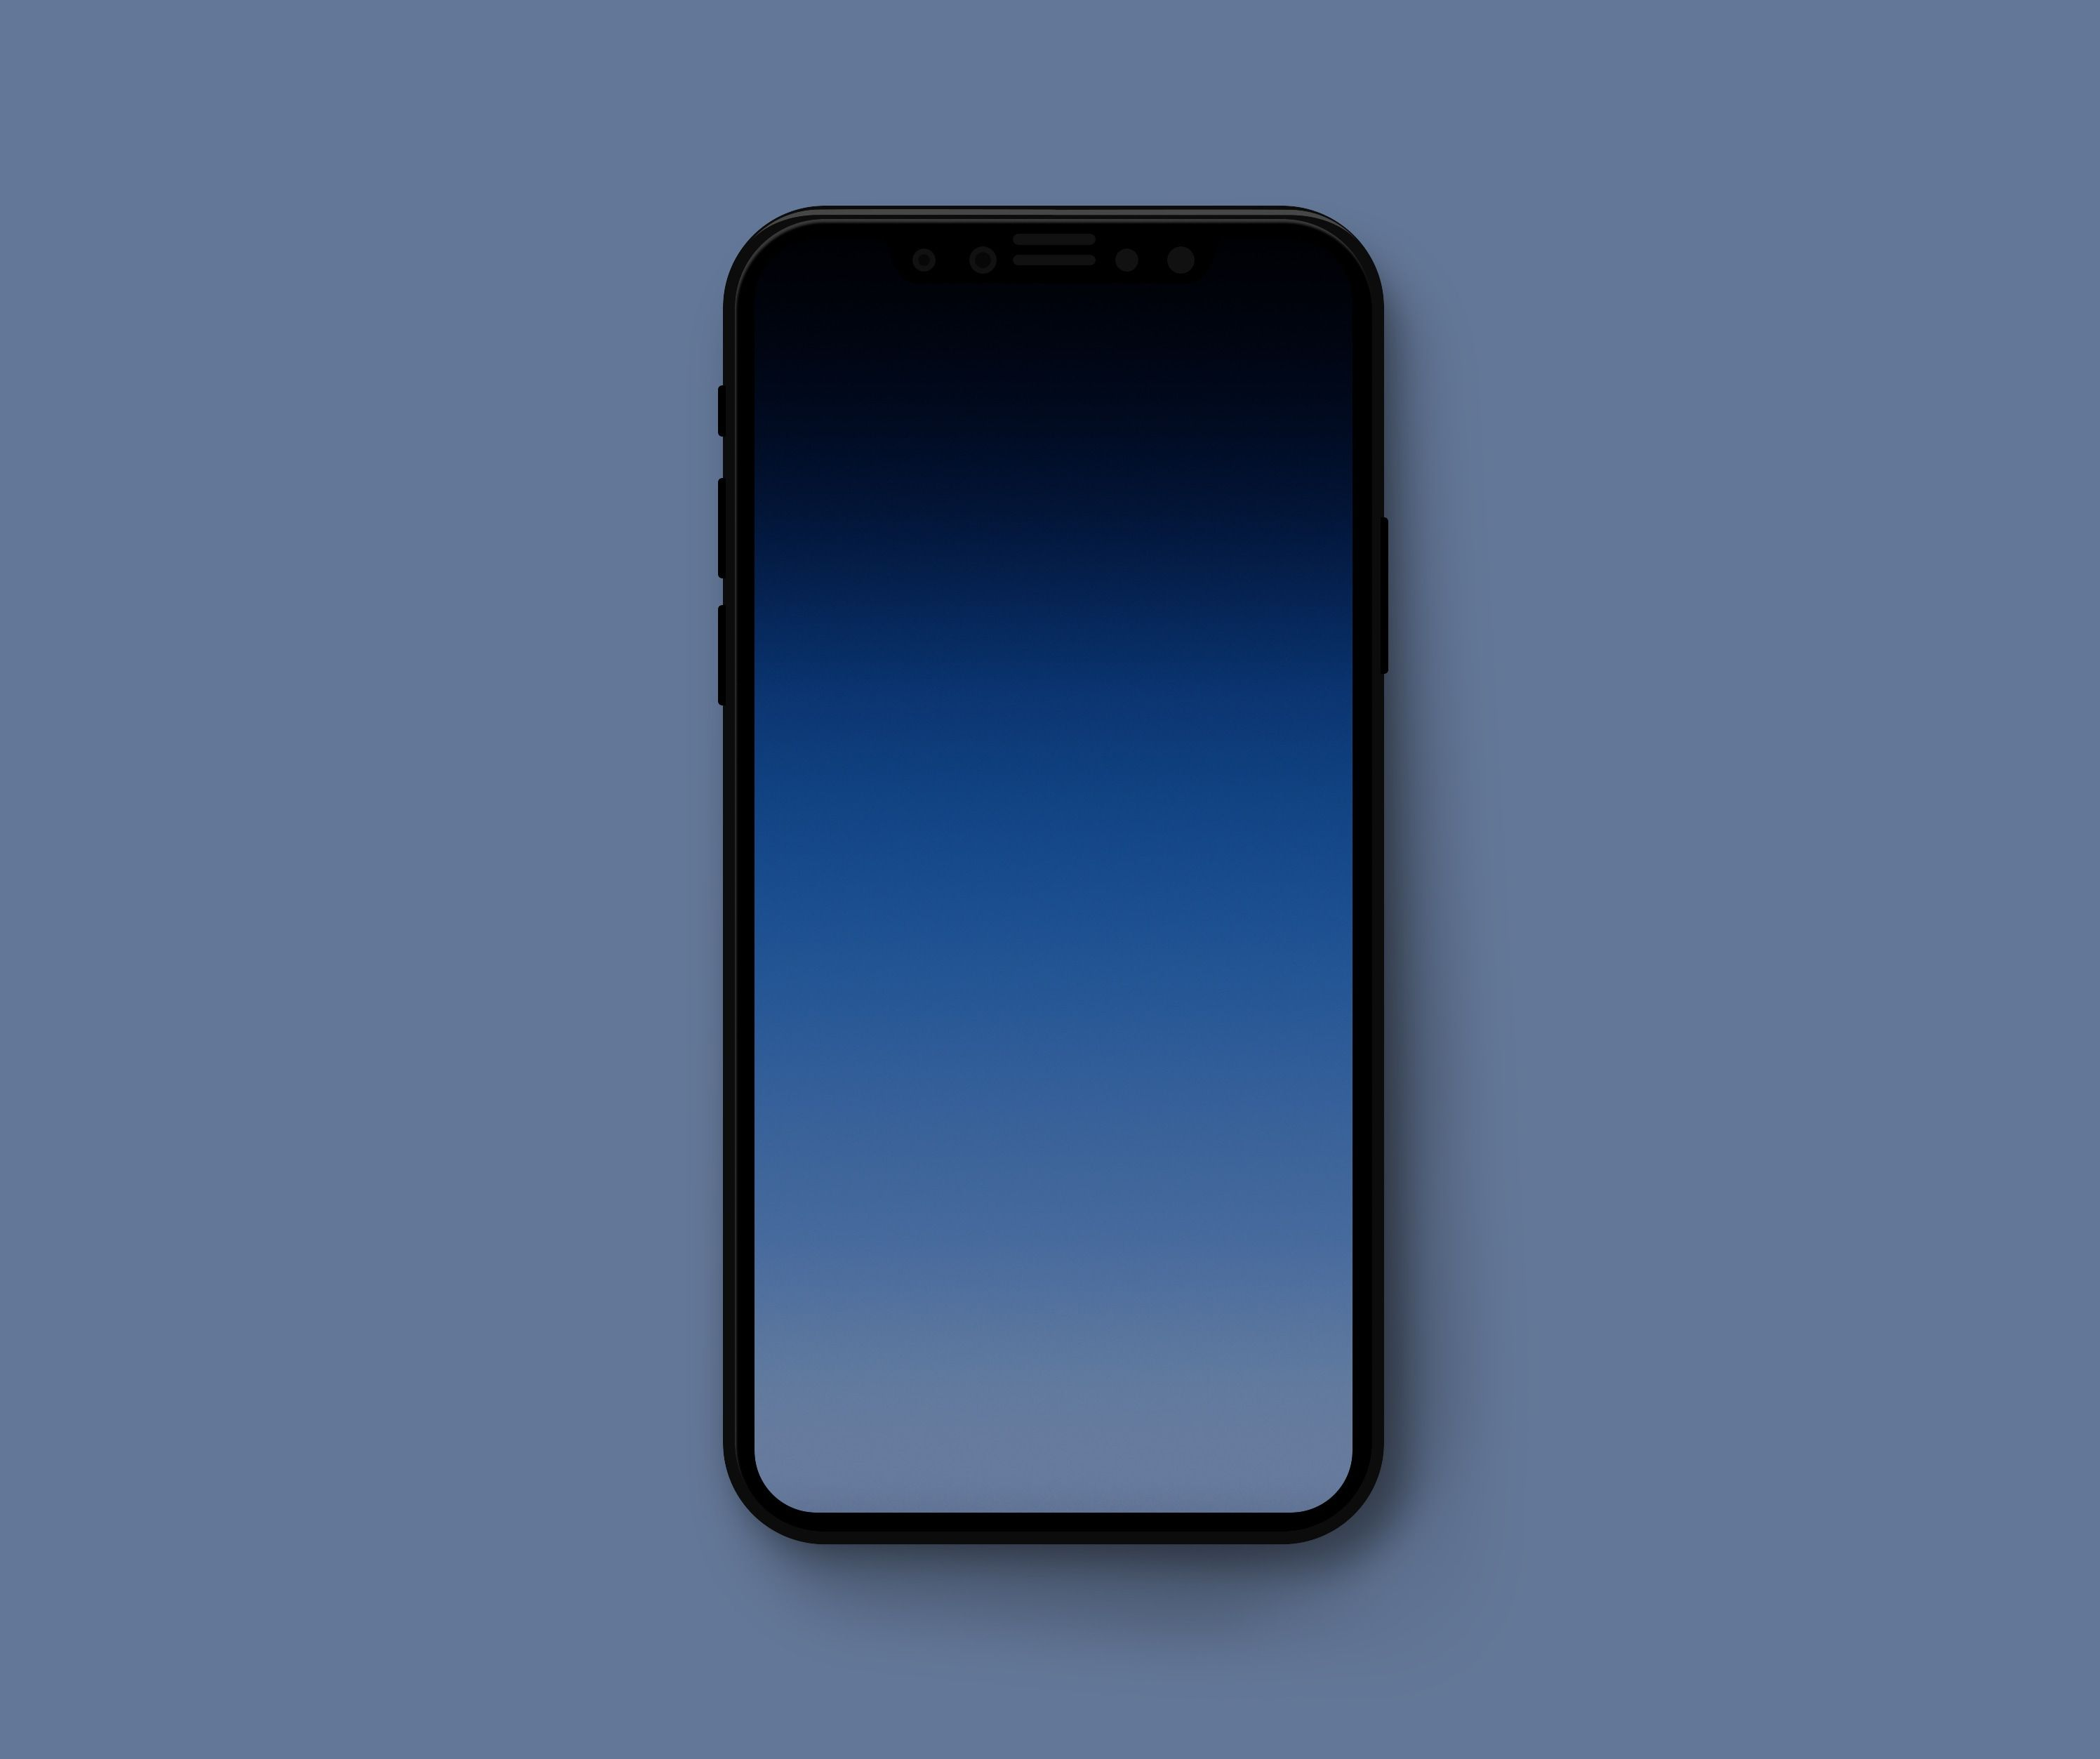 Wallpaper Iphone Minimalist: 72 Best Free Ultra HD Minimalistic Phone Wallpapers